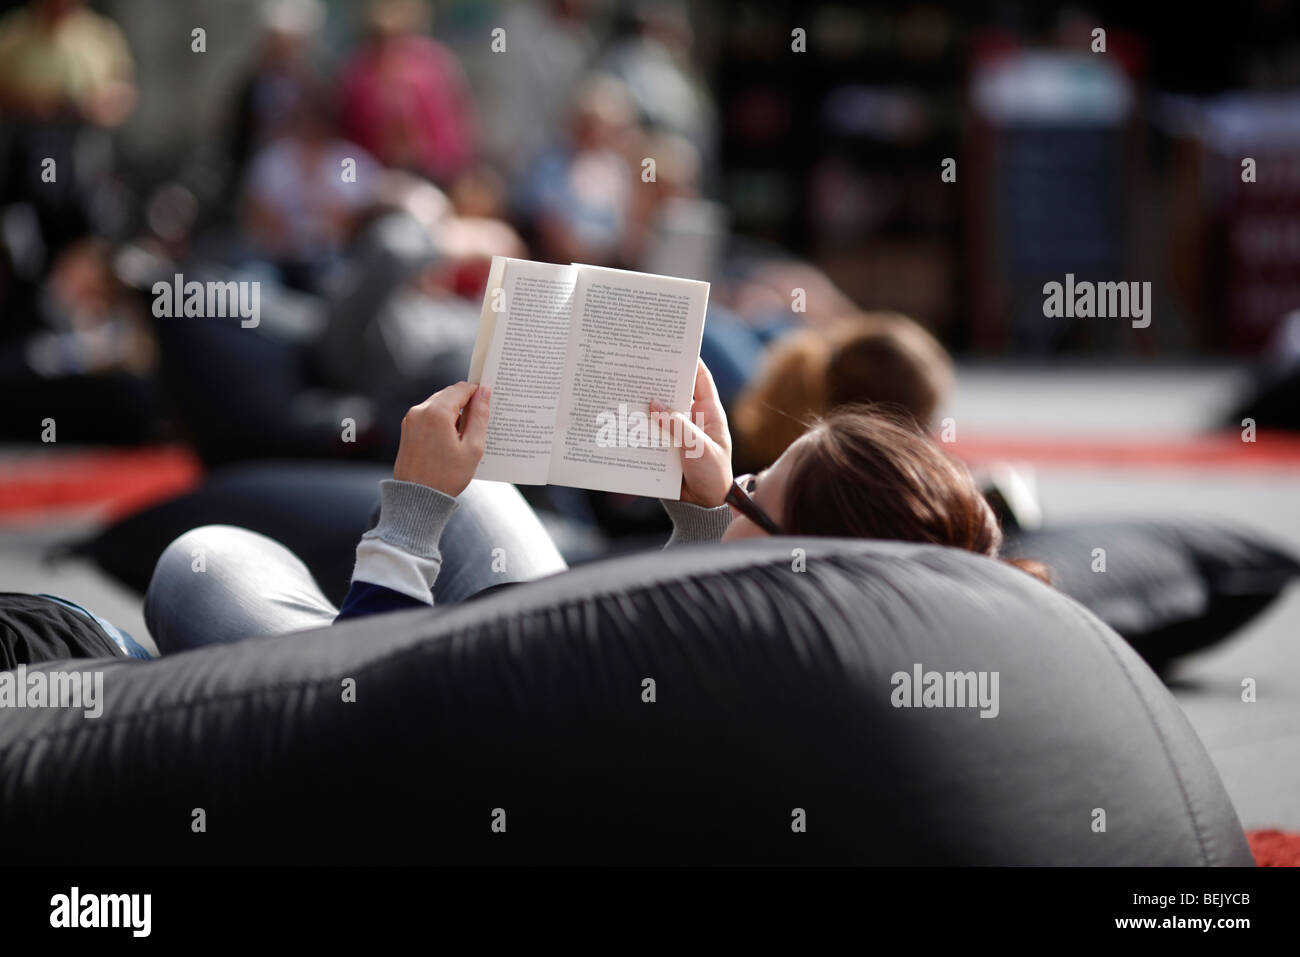 A girl reads on a beanbag cushion at an outdoor library in the Hauptplatz in the city of Graz in Austria - Stock Image